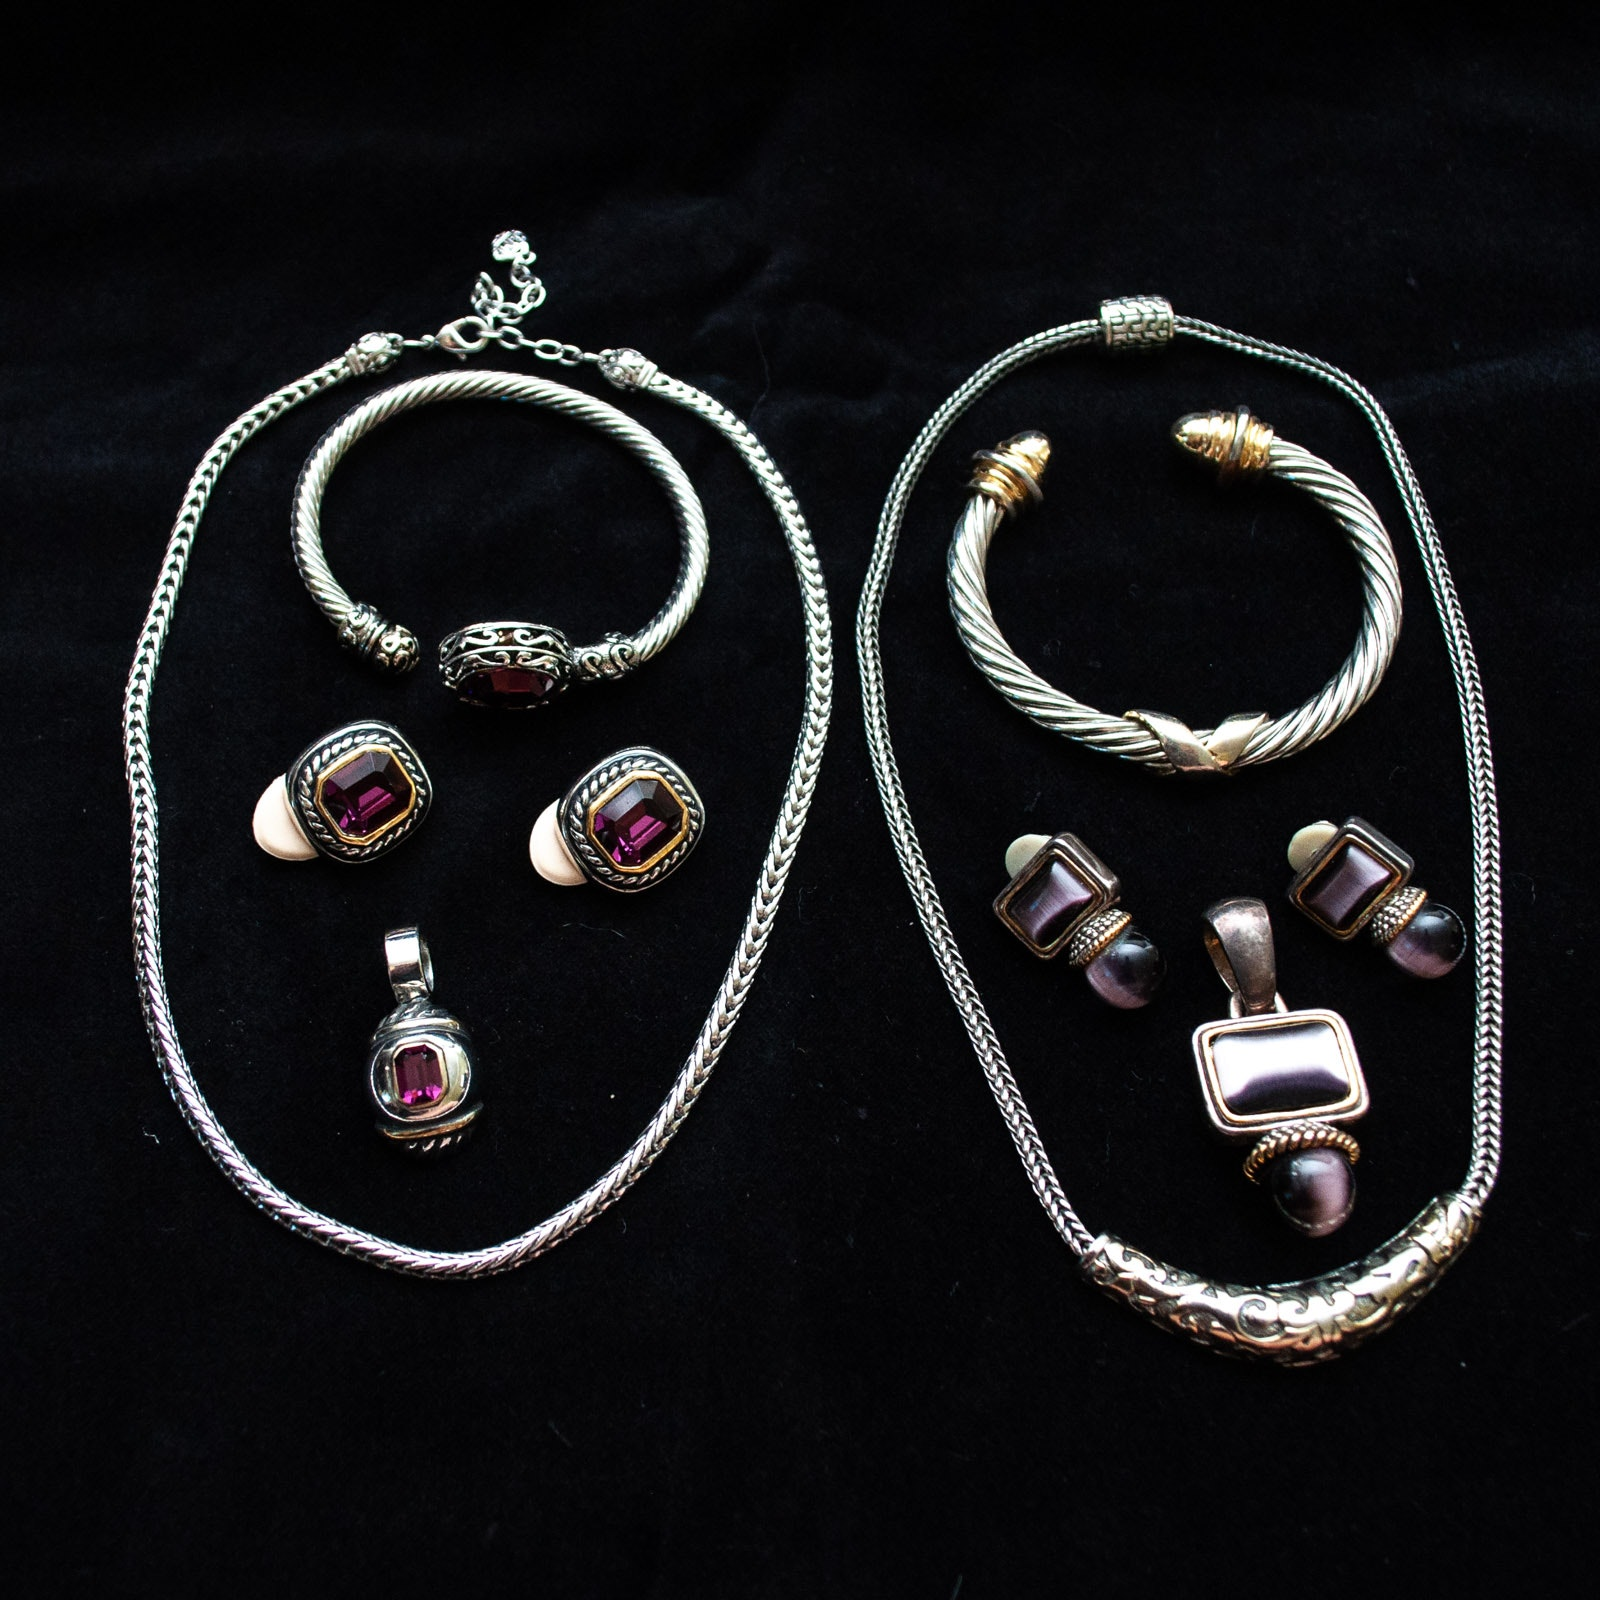 Silver and Gold Tone Cable Jewelry with Violet Glass Stones